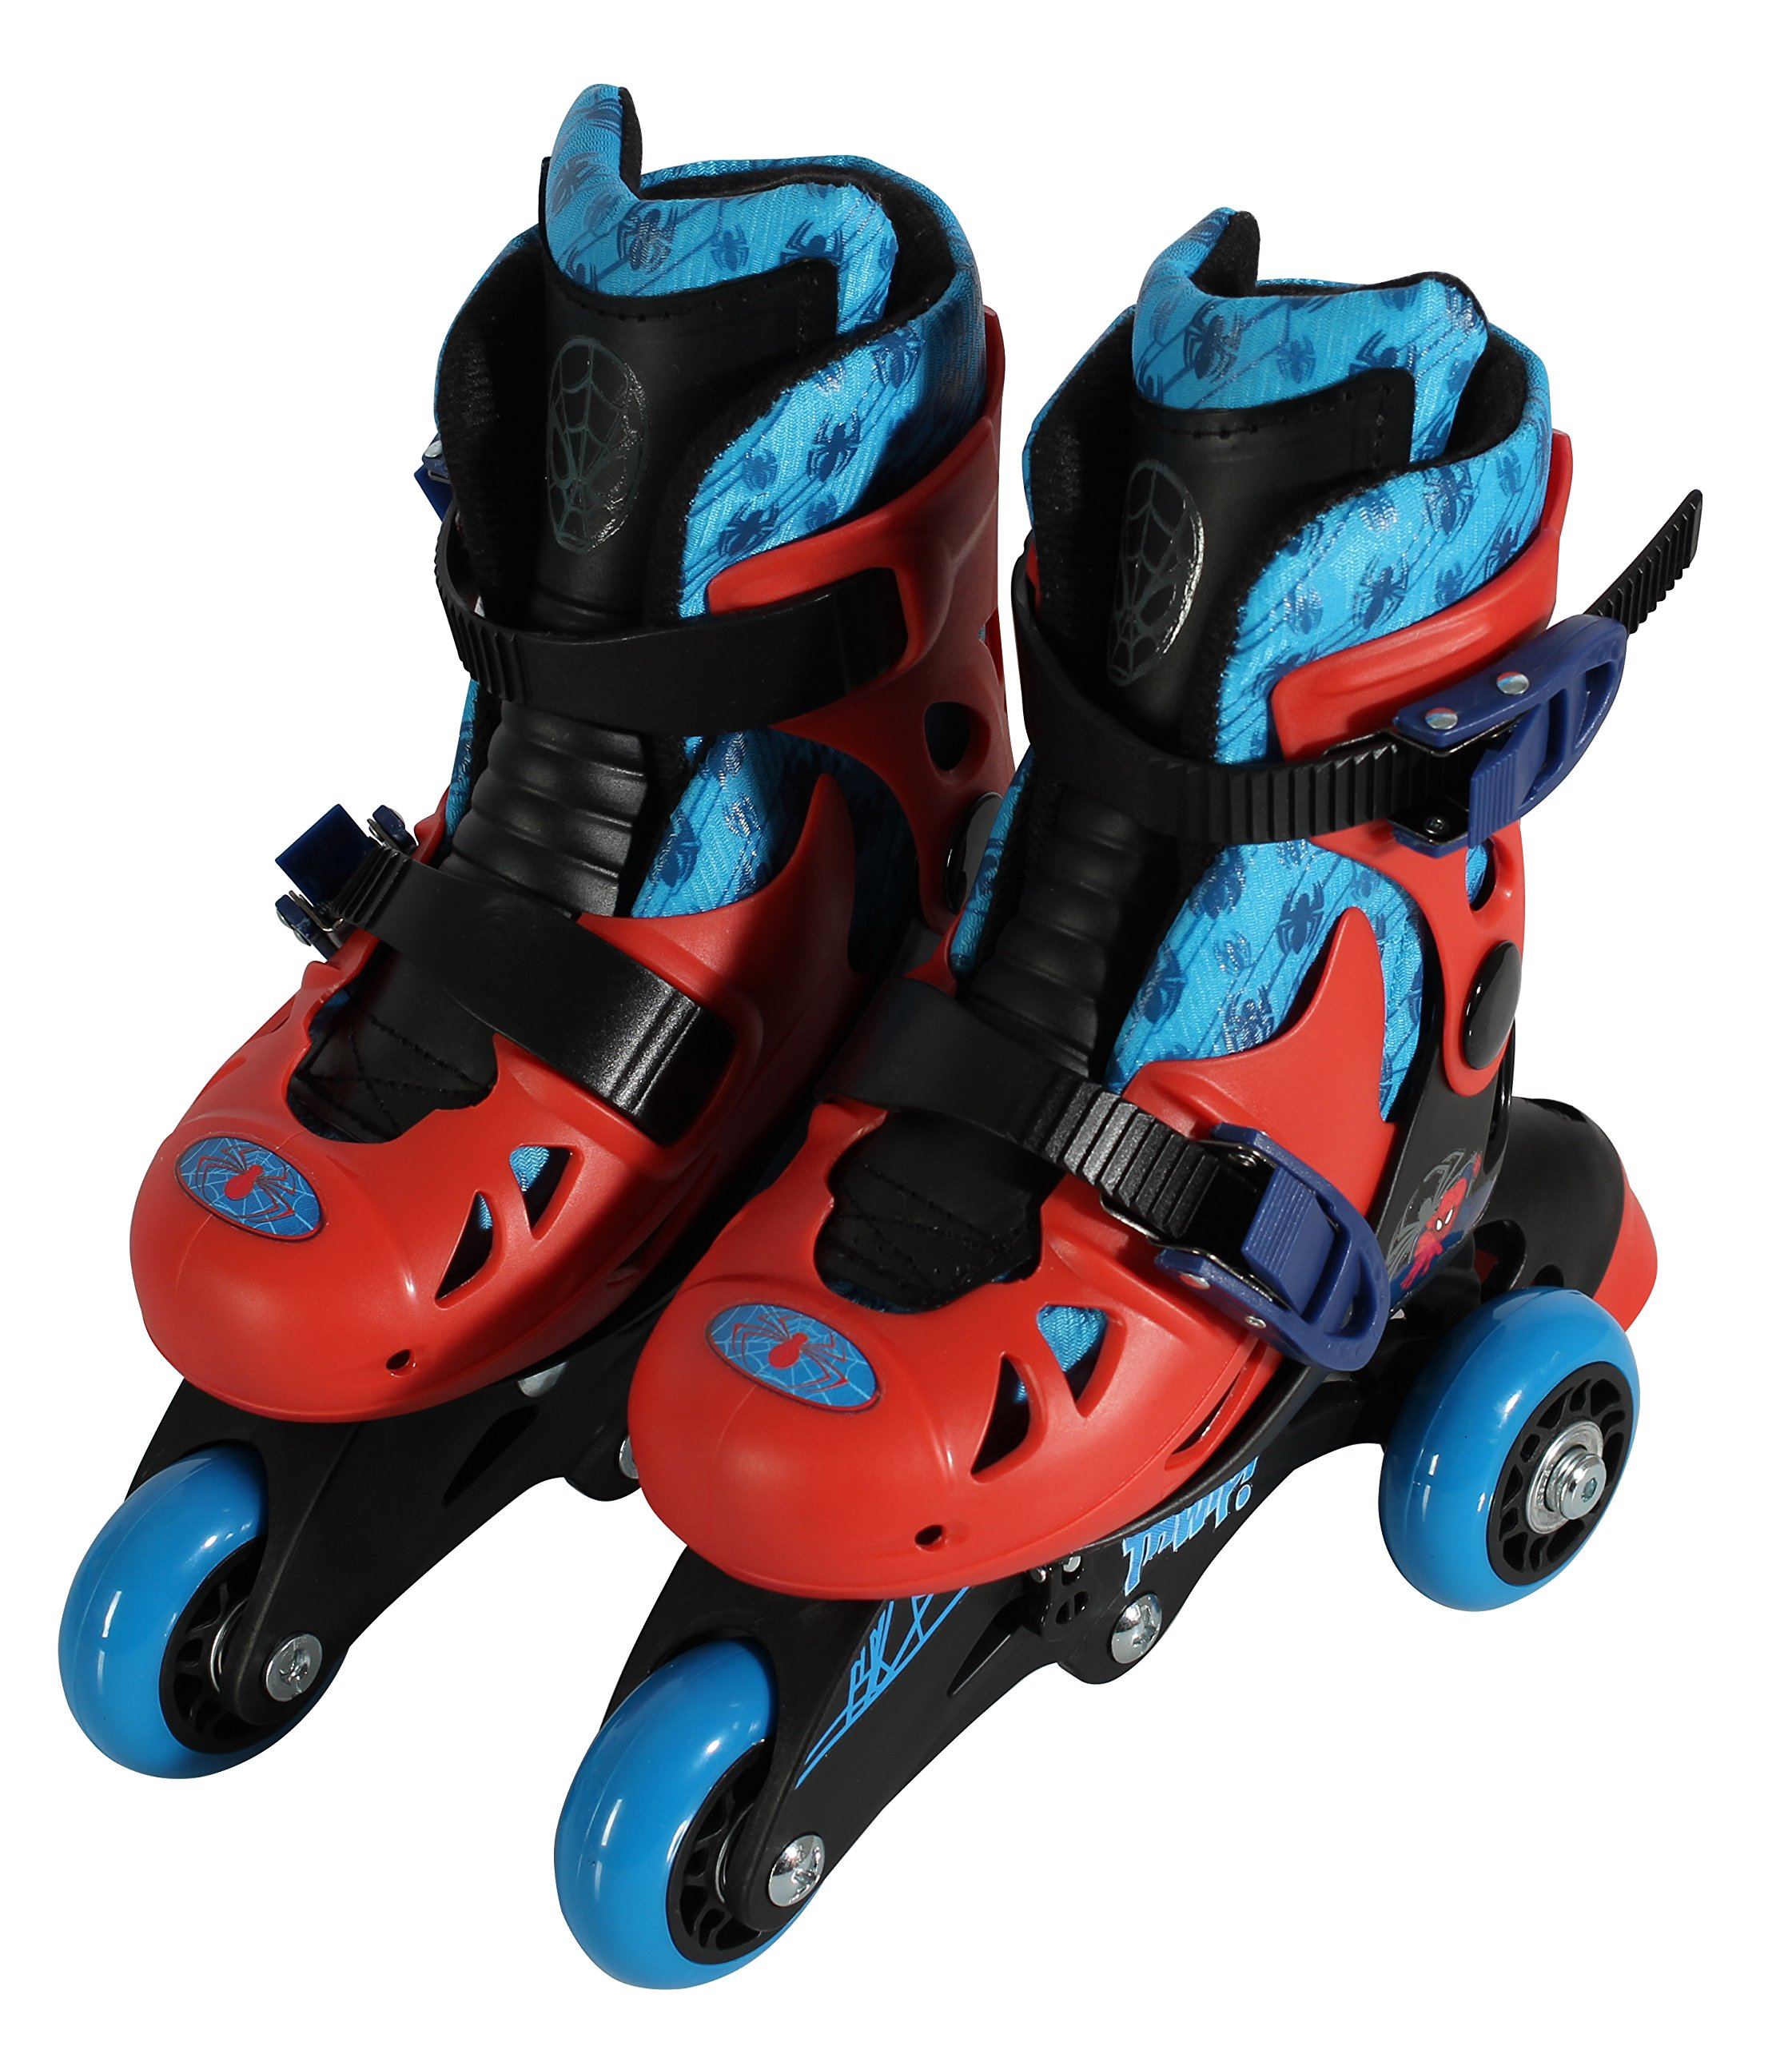 PlayWheels Ultimate Spider-Man Convertible 2-in-1 Skates, Junior Size 6-9